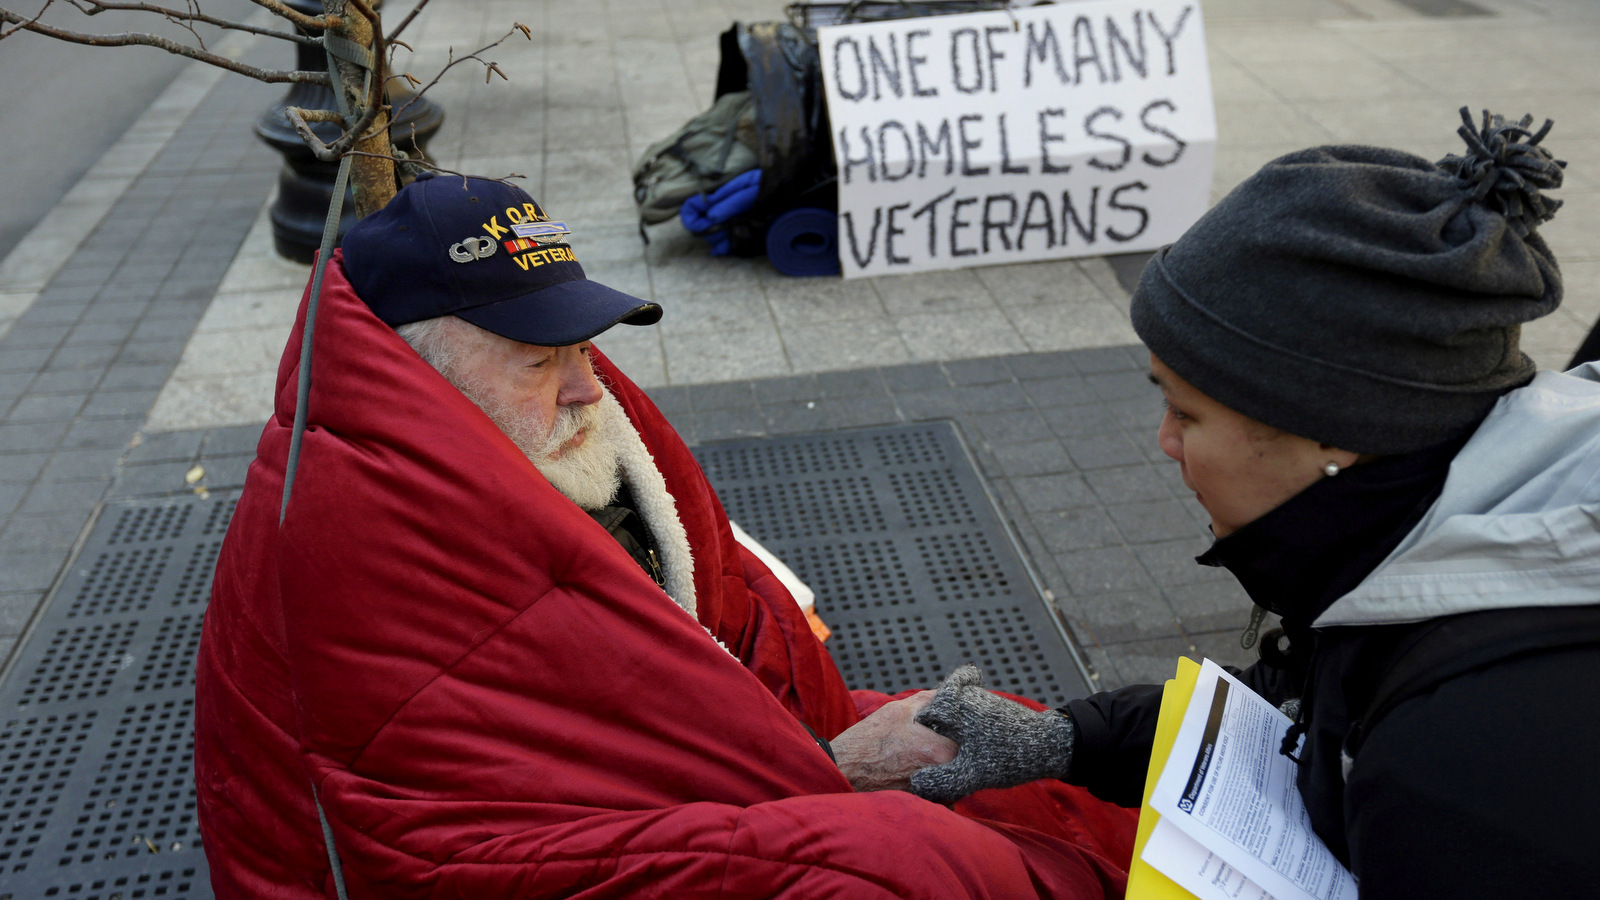 In this Wednesday, Nov. 20, 2013 photo, homeless Korean War veteran Thomas Moore, 79, left, speaks with Boston Health Care for the Homeless street team outreach coordinator Romeena Lee on a sidewalk in Boston. Moore, who said he accidentally killed his best friend with a phosphorous grenade during one firefight and spent months afterward at Walter Reed Army Medical Center in Washington, also said he has no interest in getting a government-subsidized apartment. (AP Photo/Steven Senne)